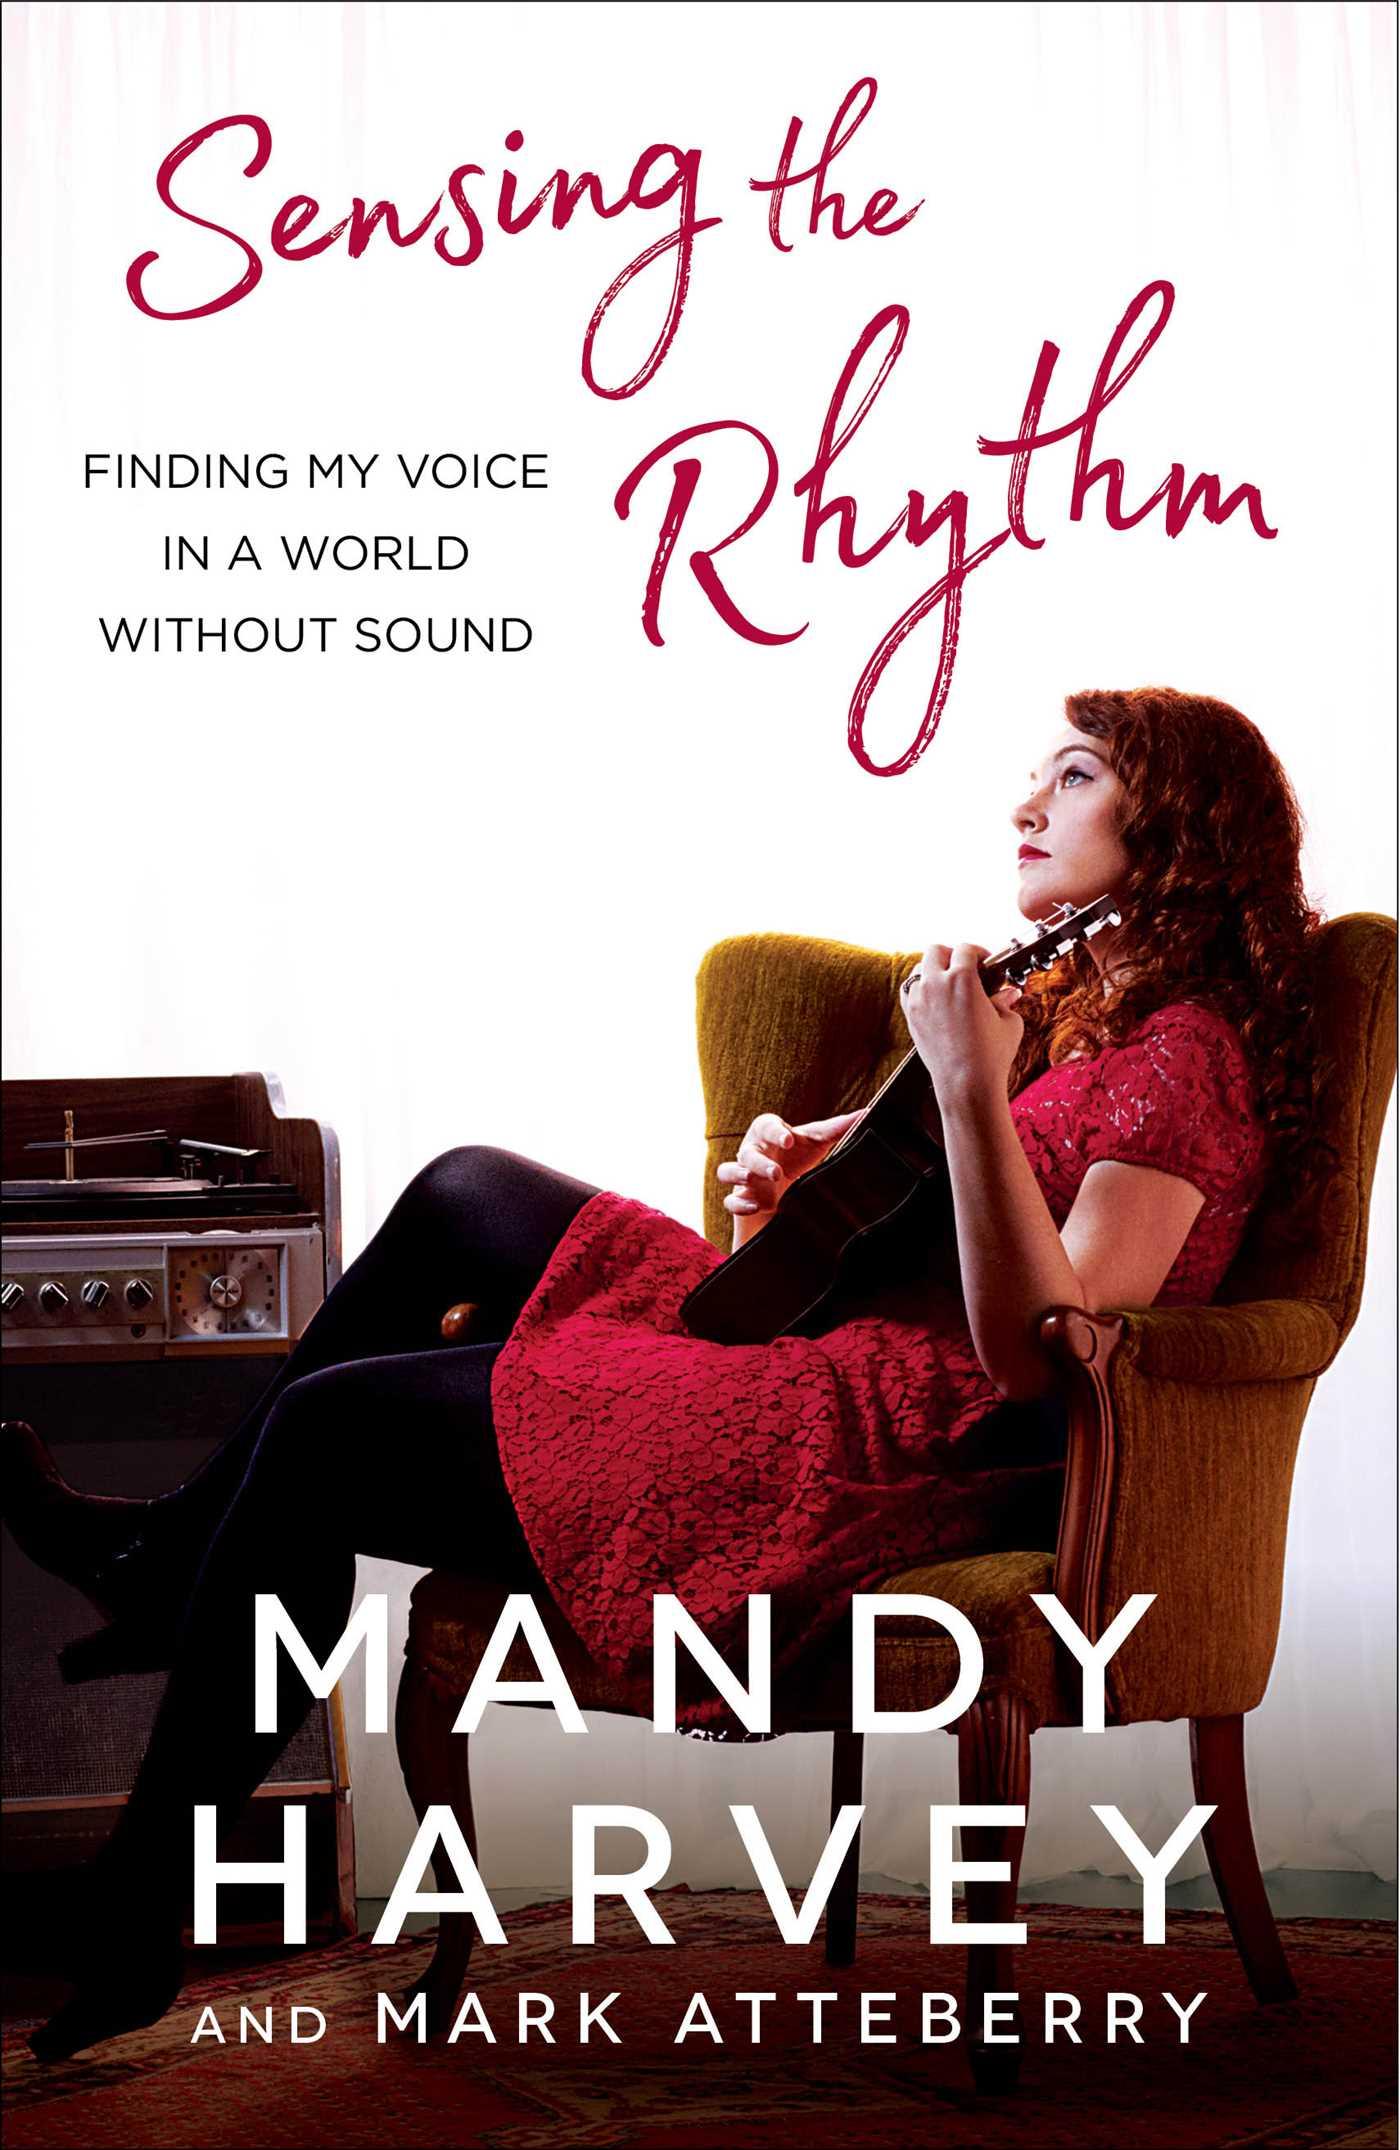 Image result for mandy harvey sensing the rhythm